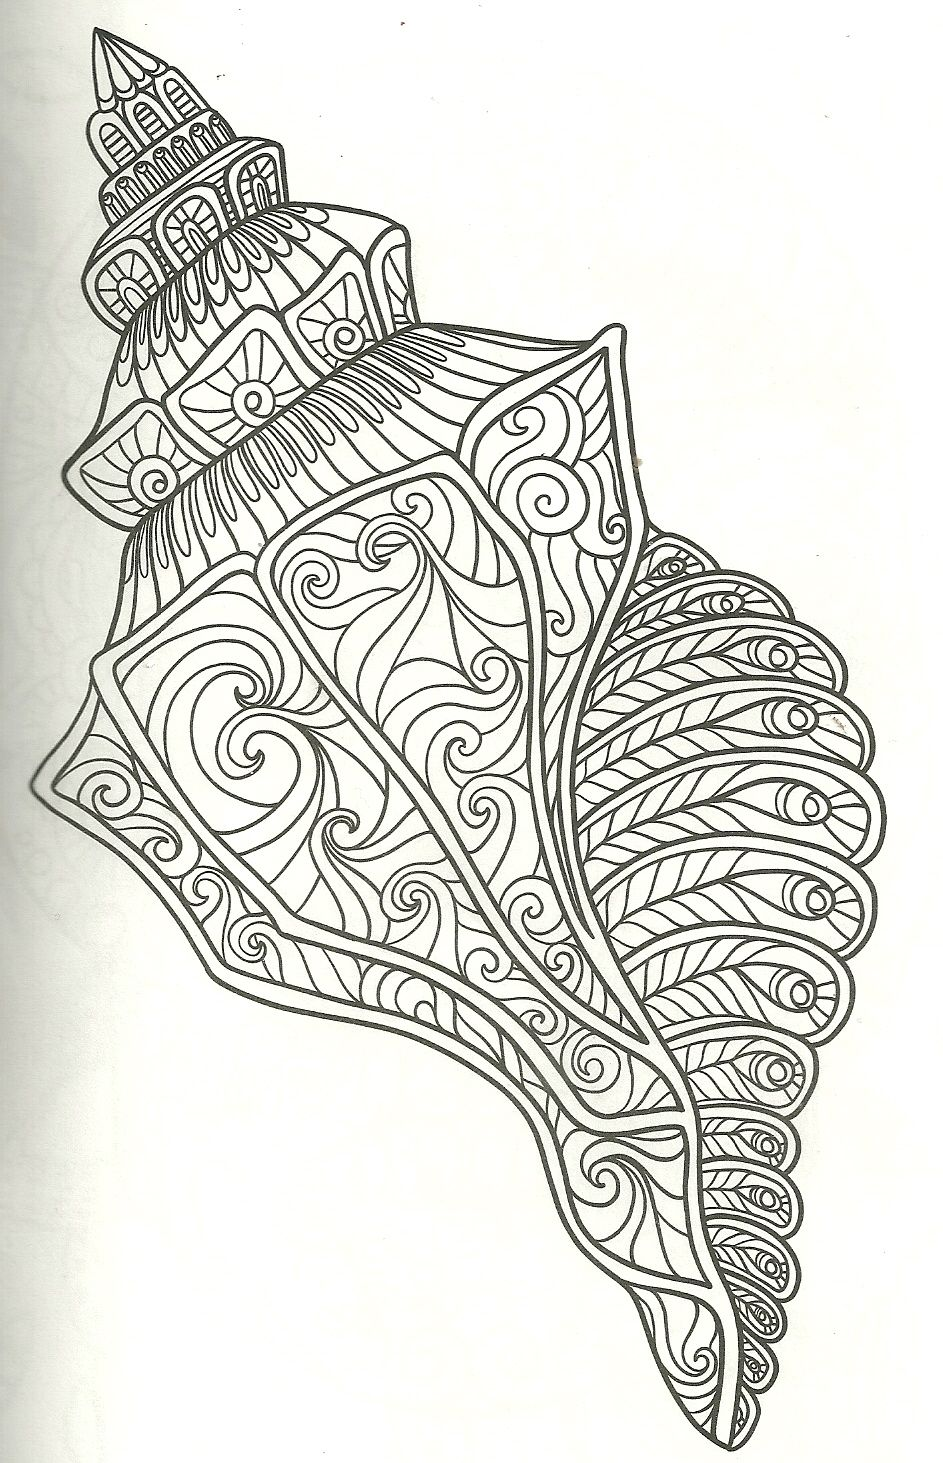 shell coloring page my coloring pages Crayon art